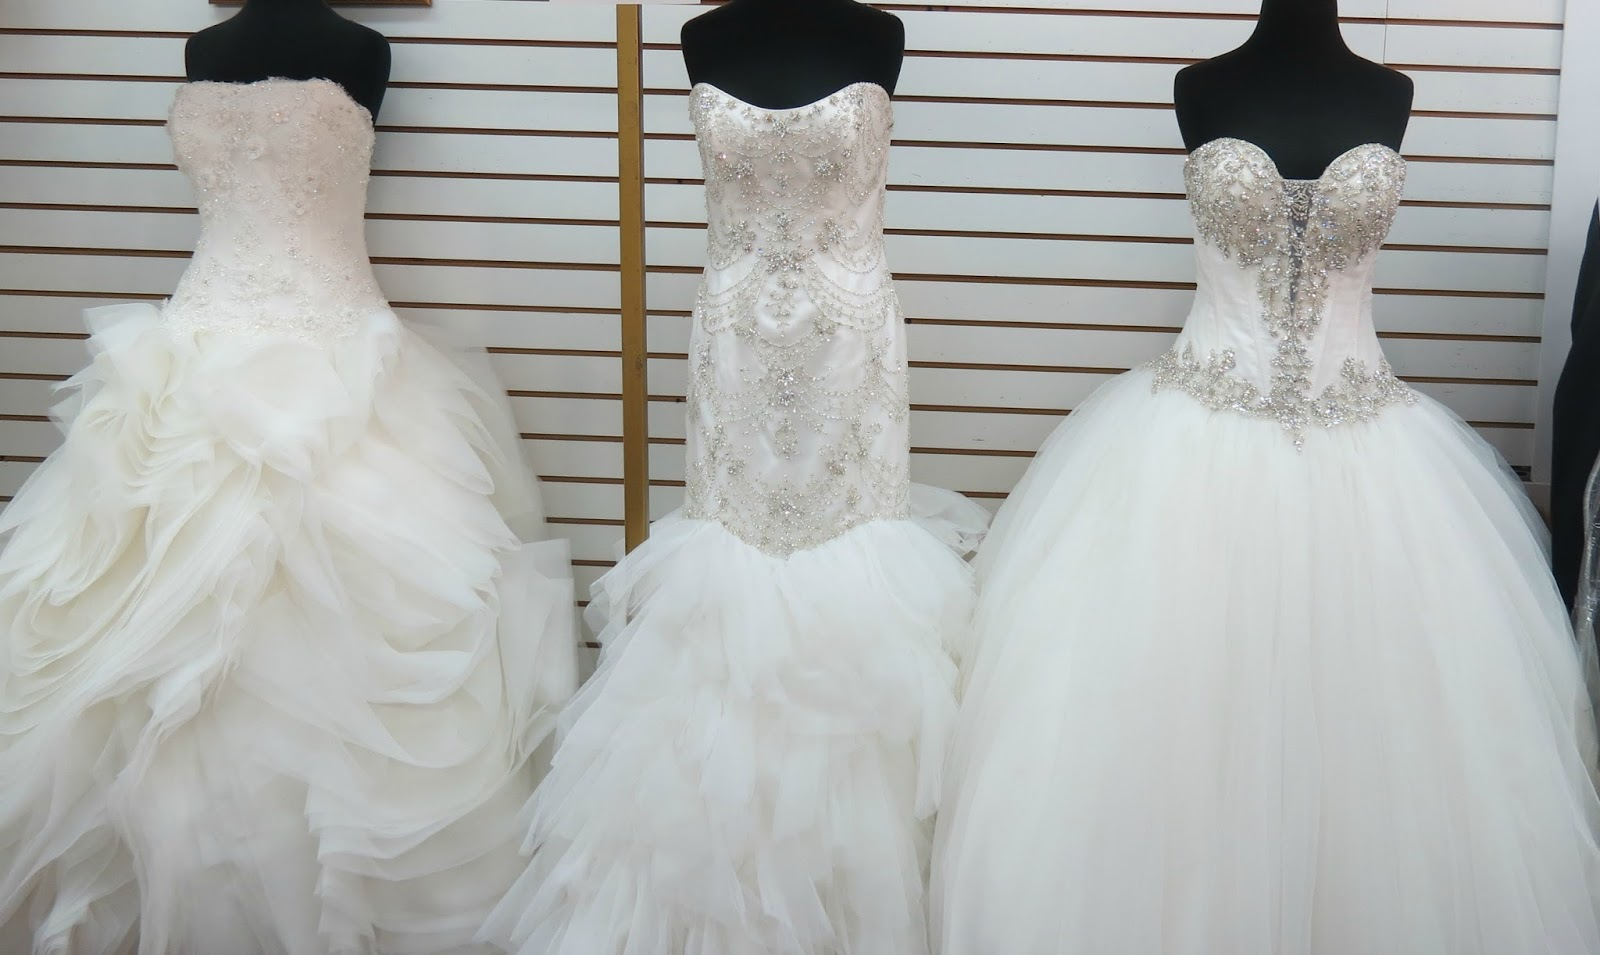 Wedding Dresses Los Angeles Fashion District - Wedding Short Dresses